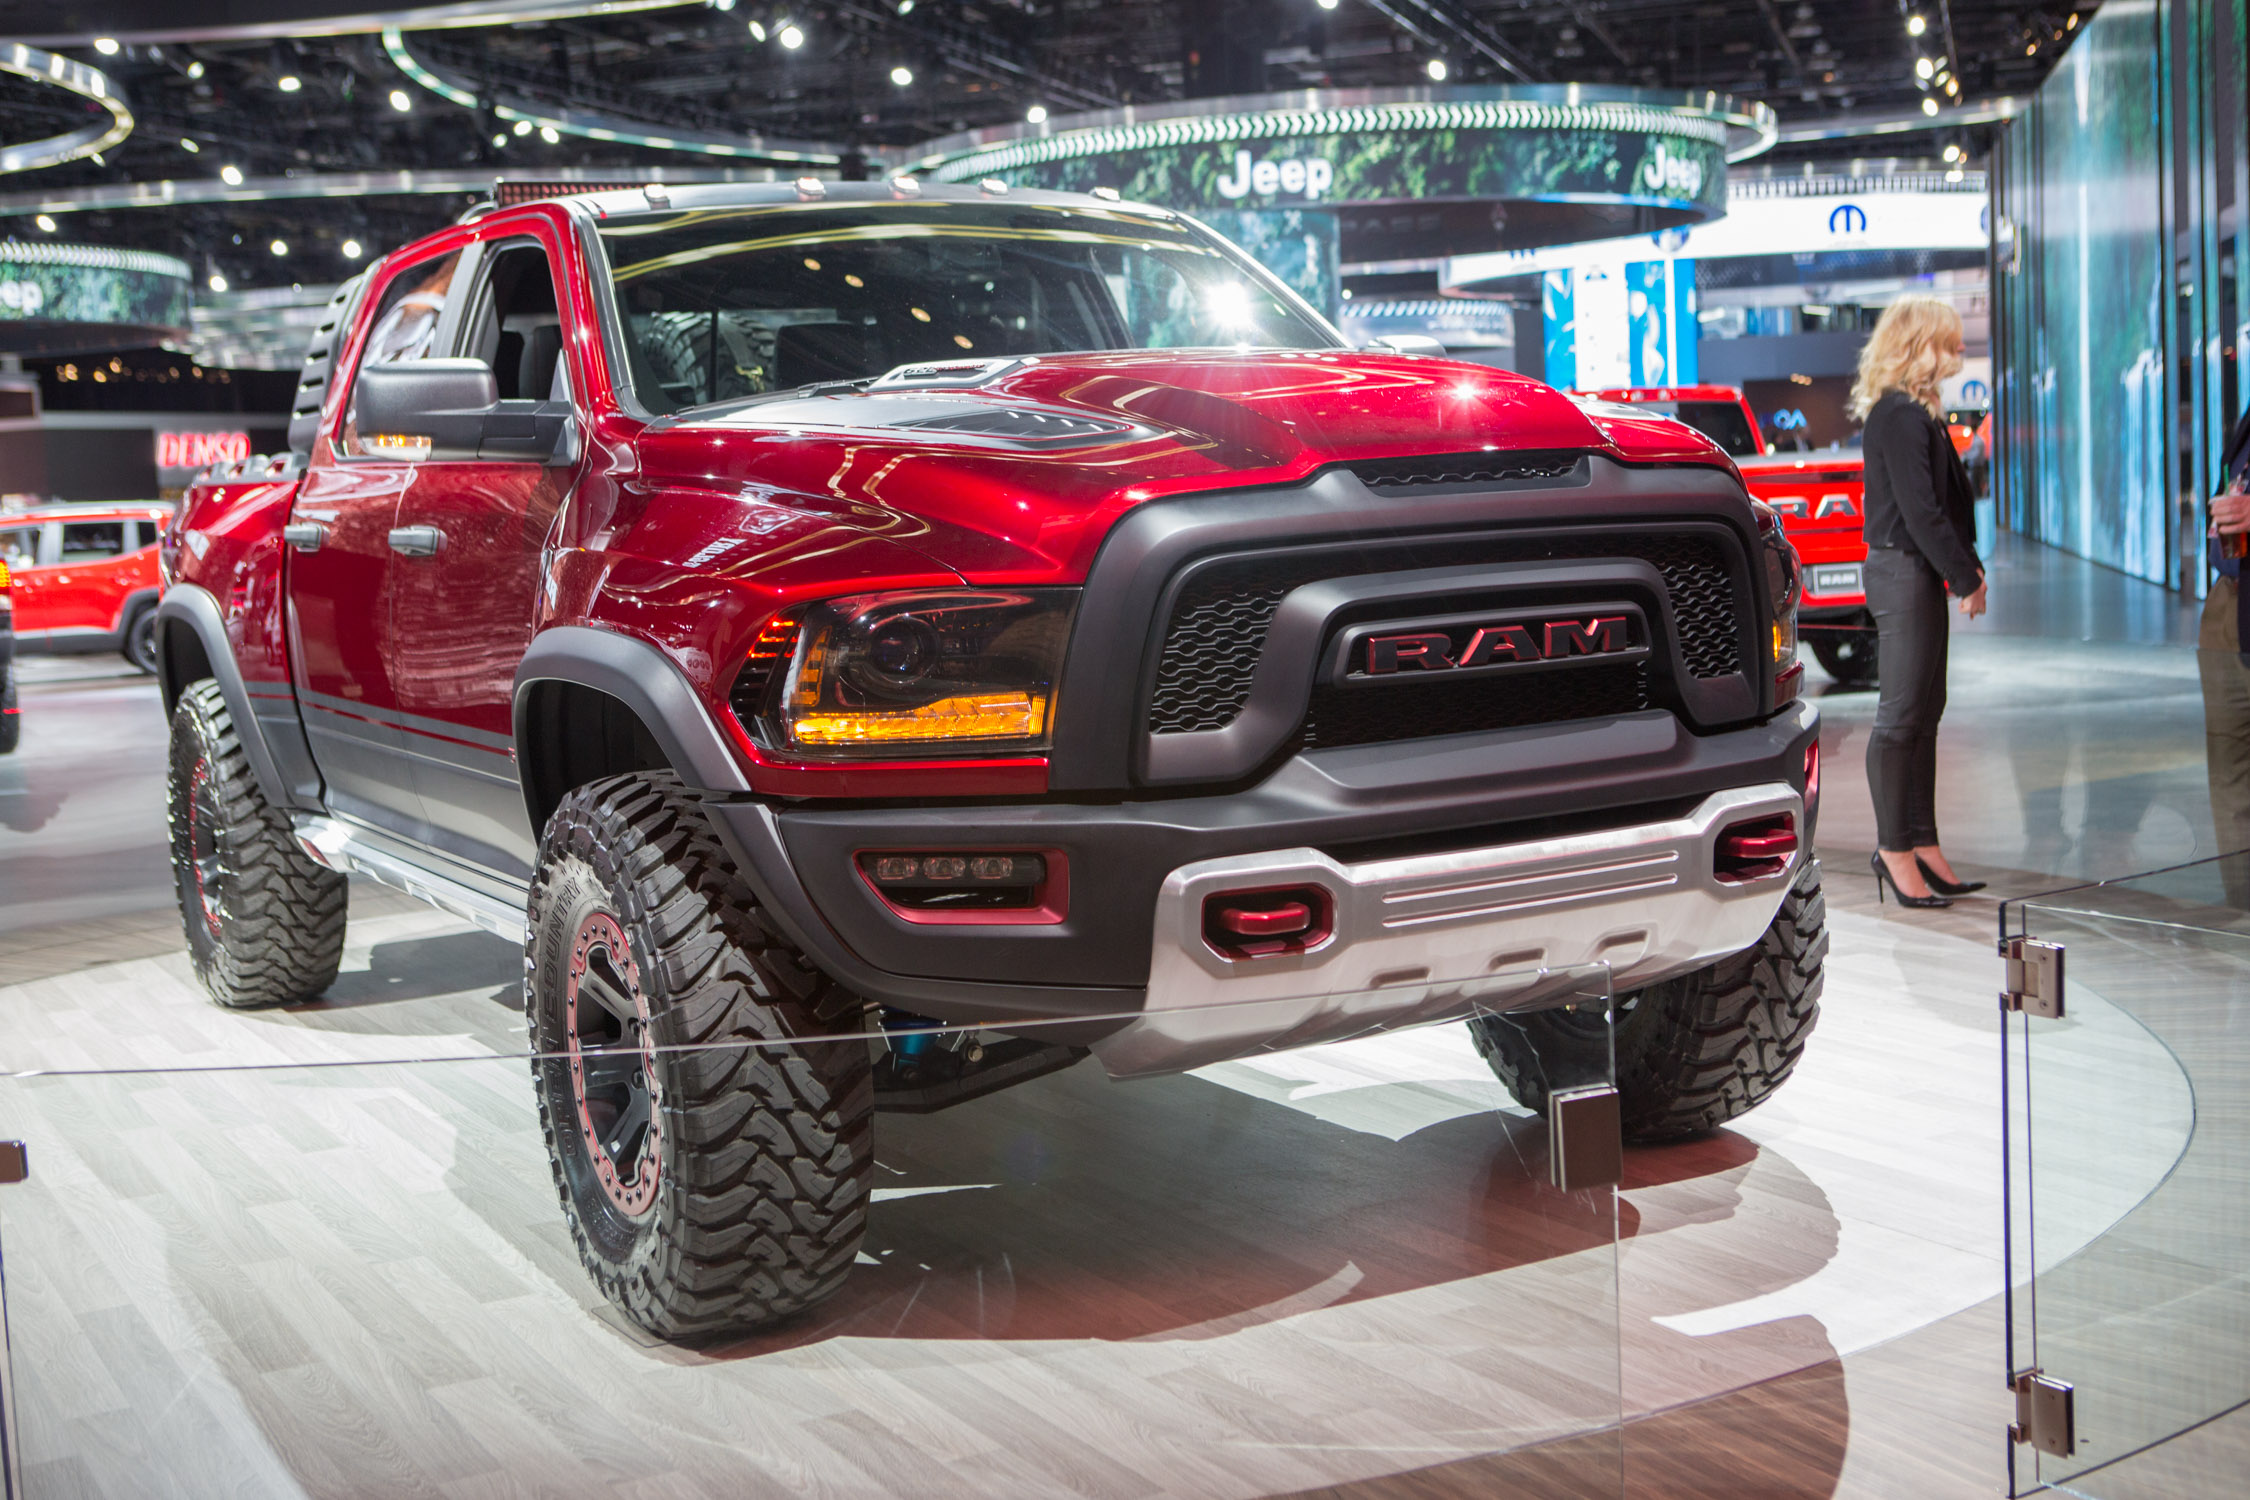 Top Trucks In Motown Are An Incredibly Iconic And Important Part Of The American Automotive Landscape Three Vehicles Sold America